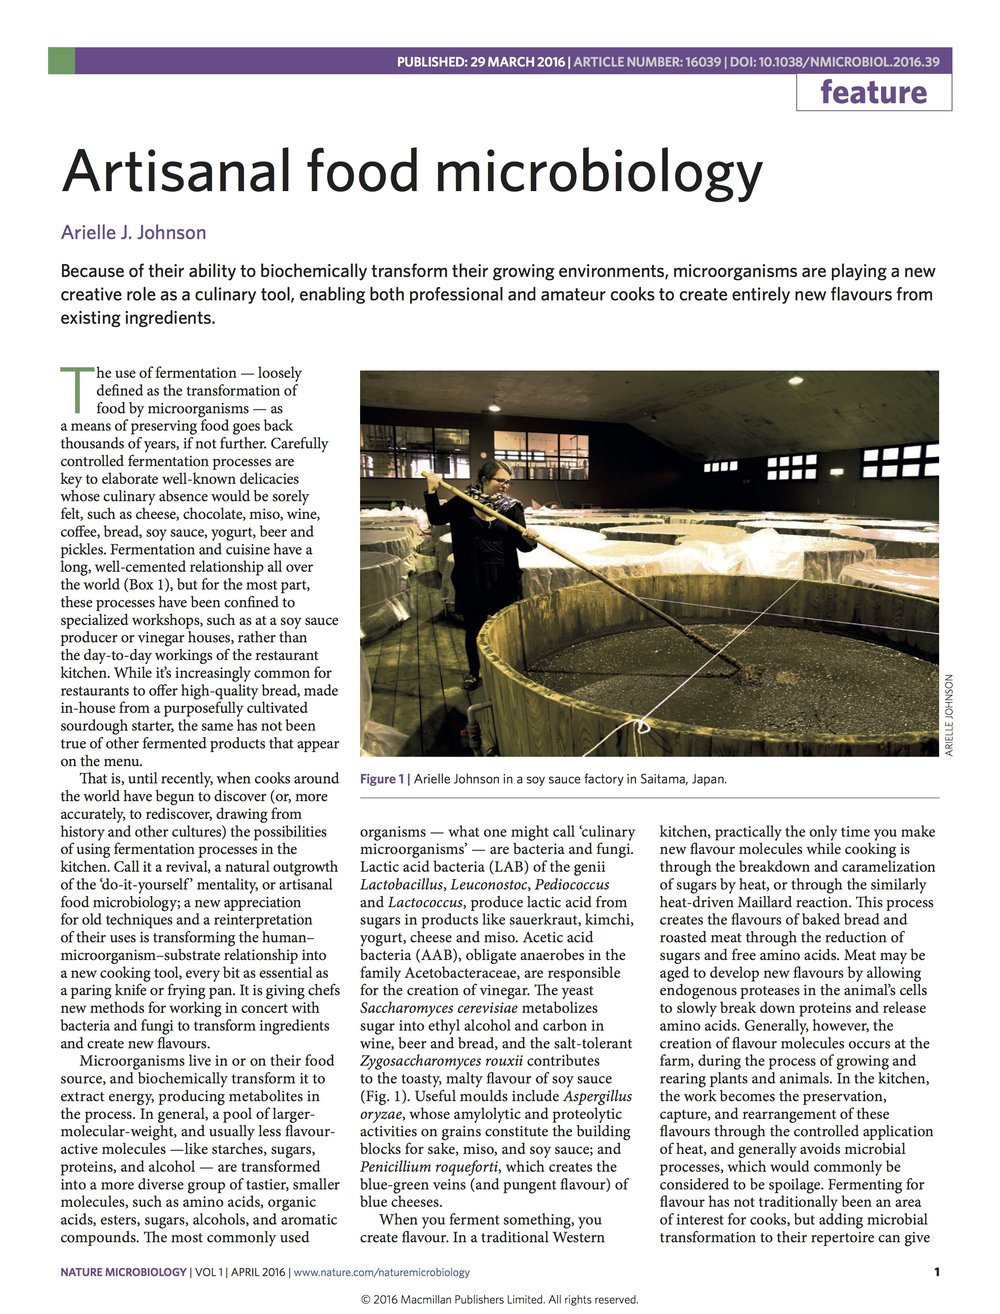 Artisanal Food Microbiology - Nature Microbiology, 2016read more